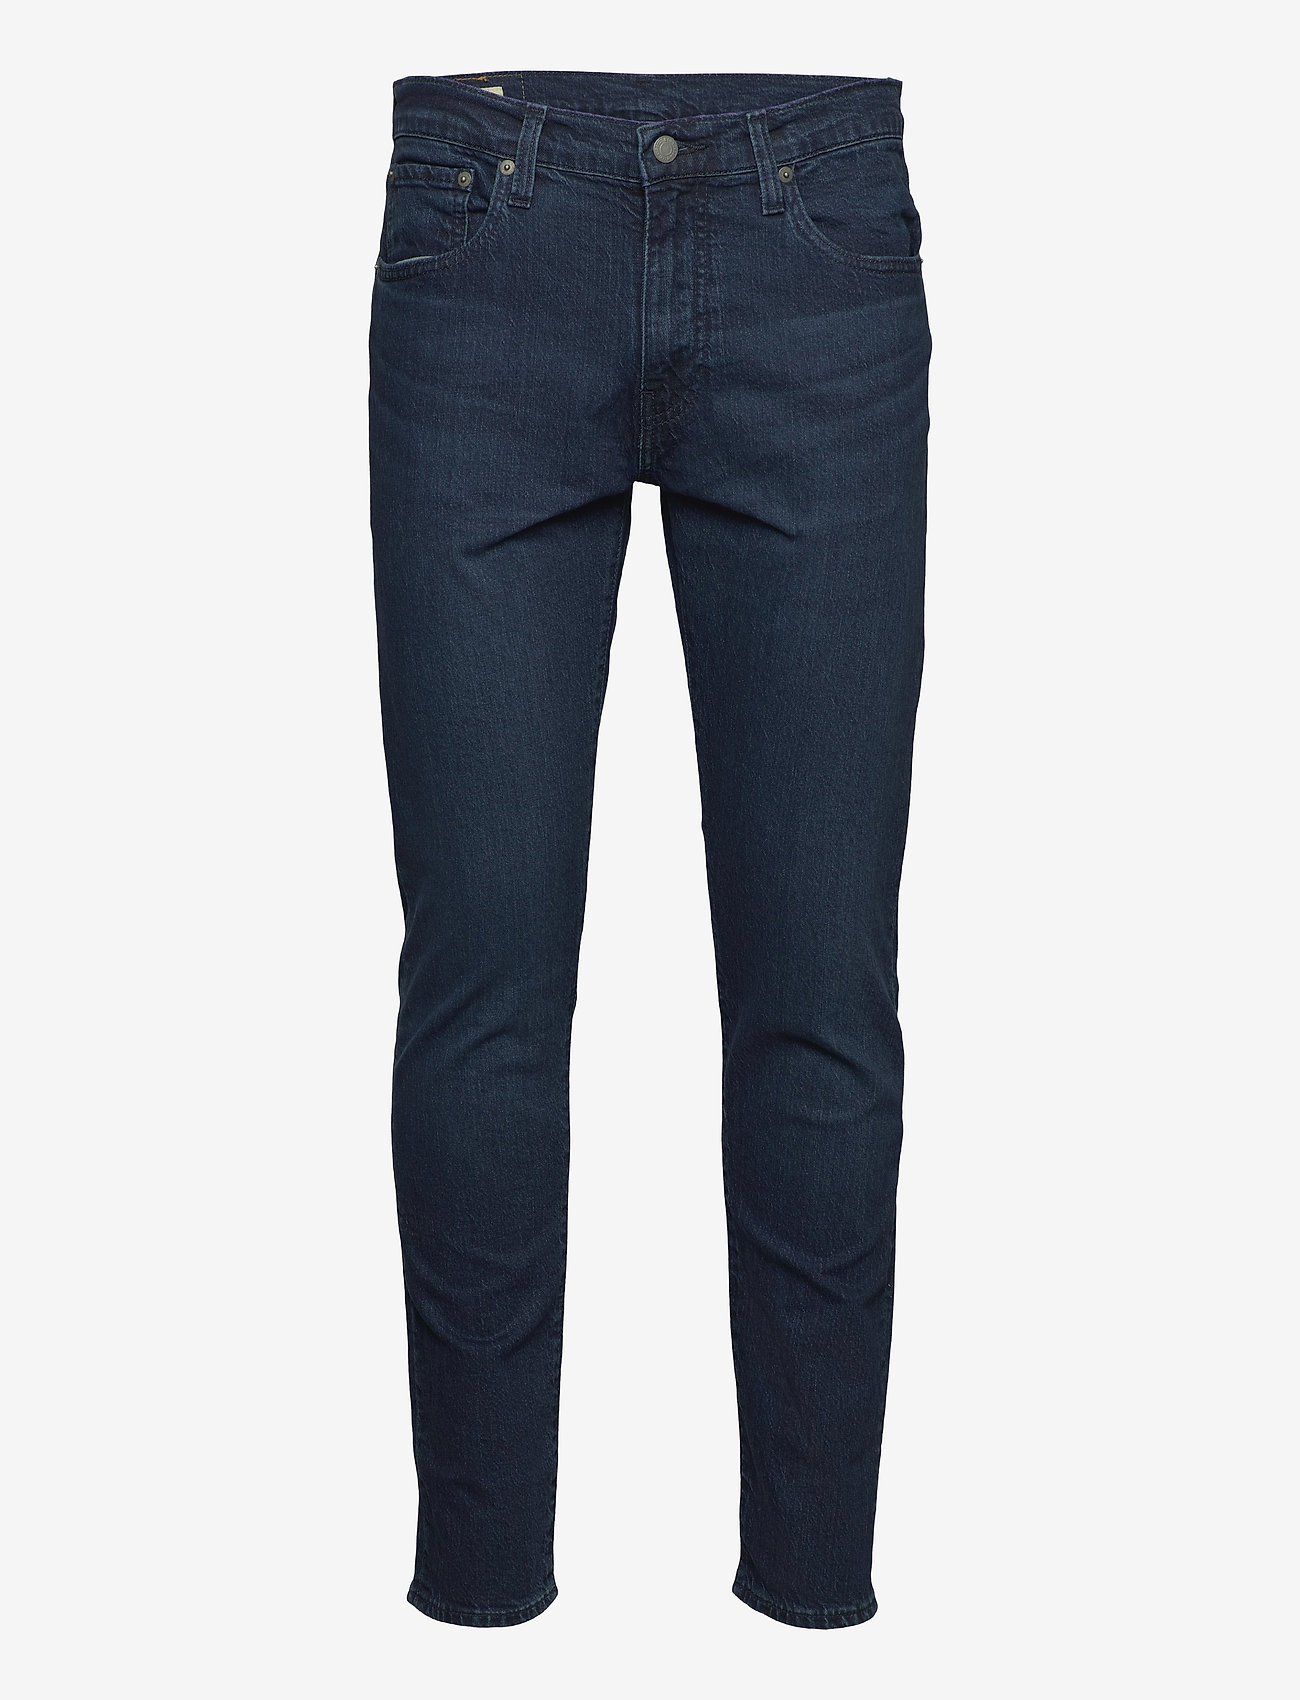 LEVI´S Men - 512 SLIM TAPER LAURELHURST FEE - slim jeans - dark indigo - worn in - 0